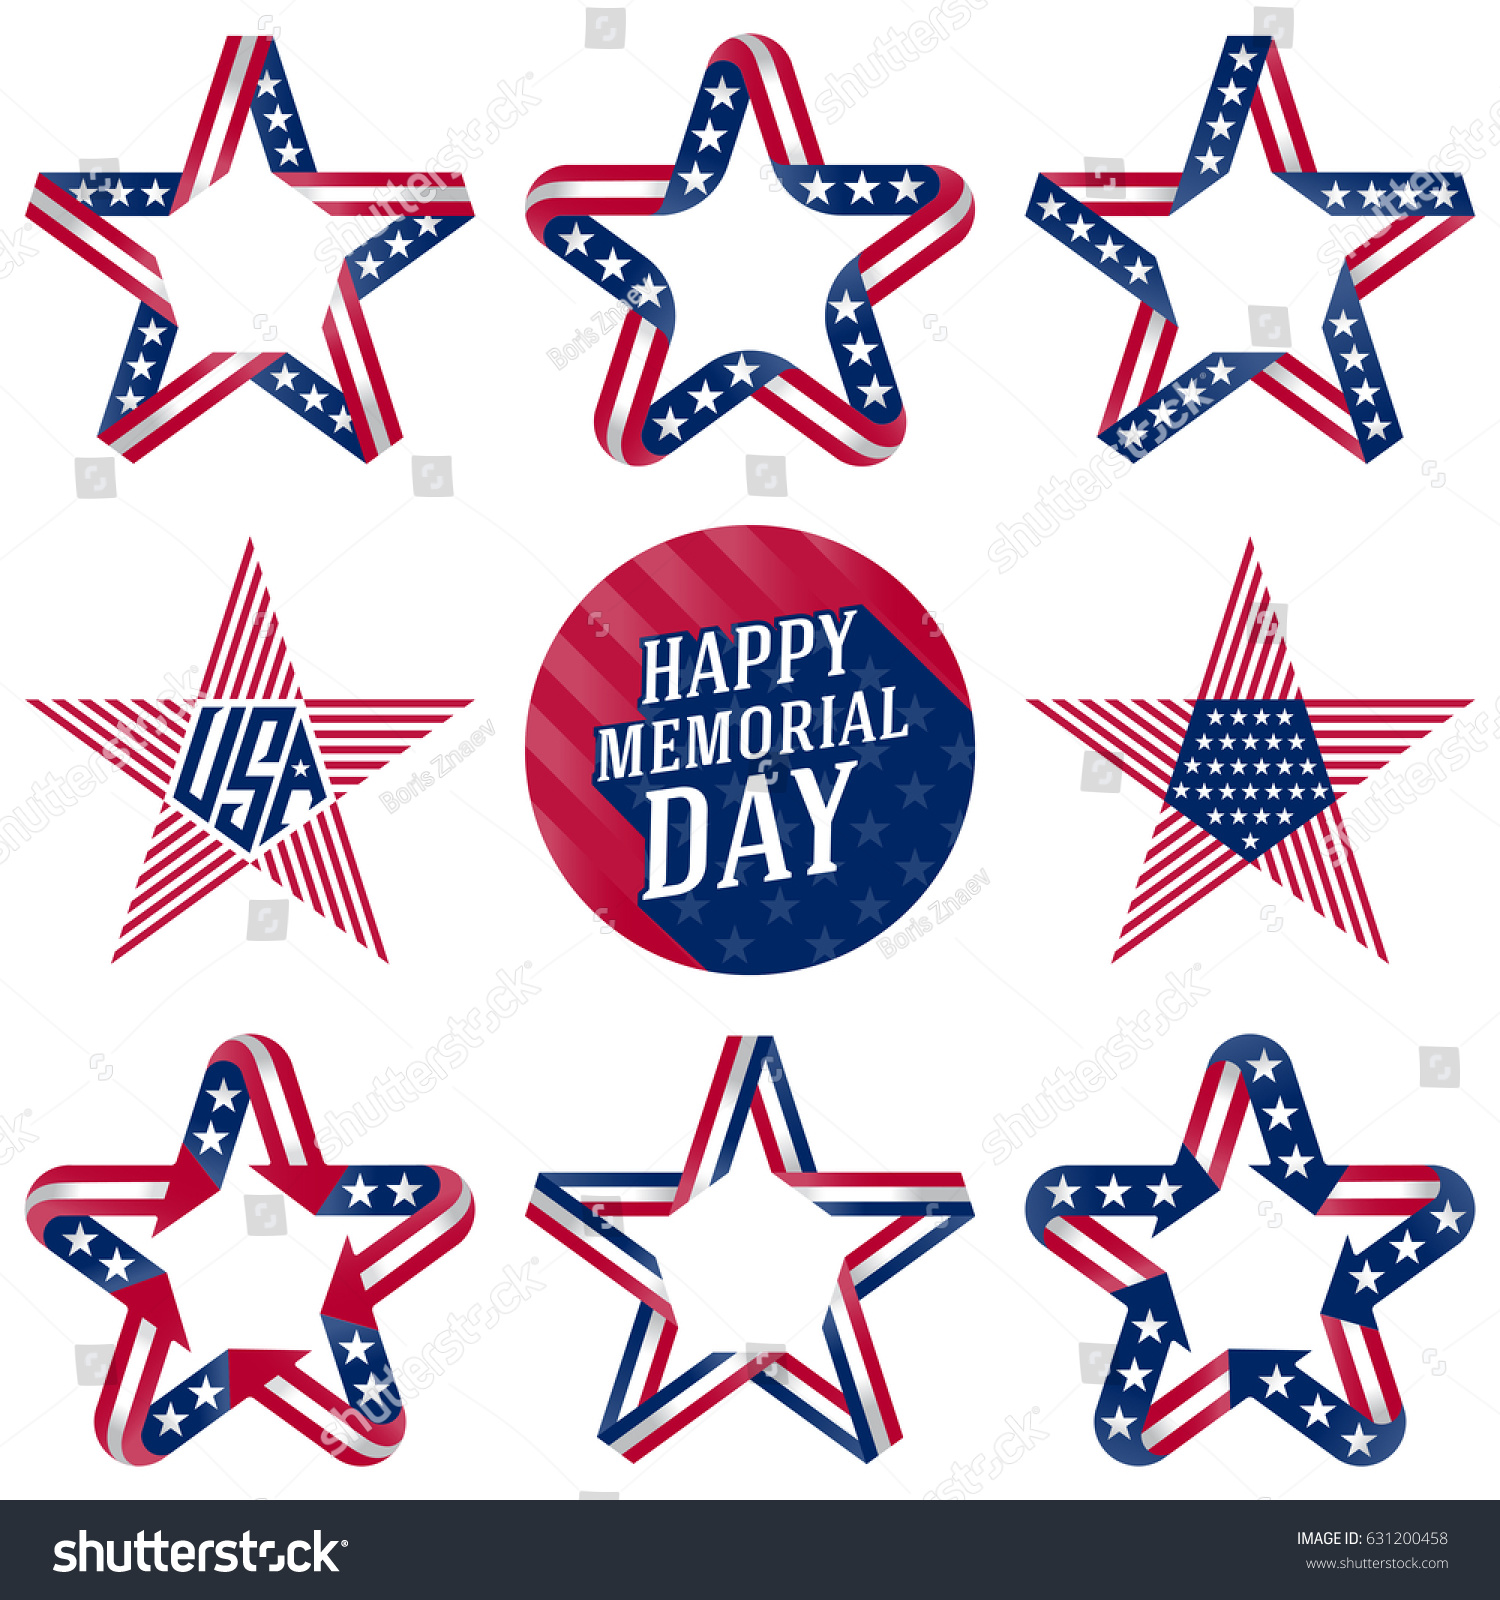 Happy Memorial Day Design Elements Stars Stock Vector Royalty Free